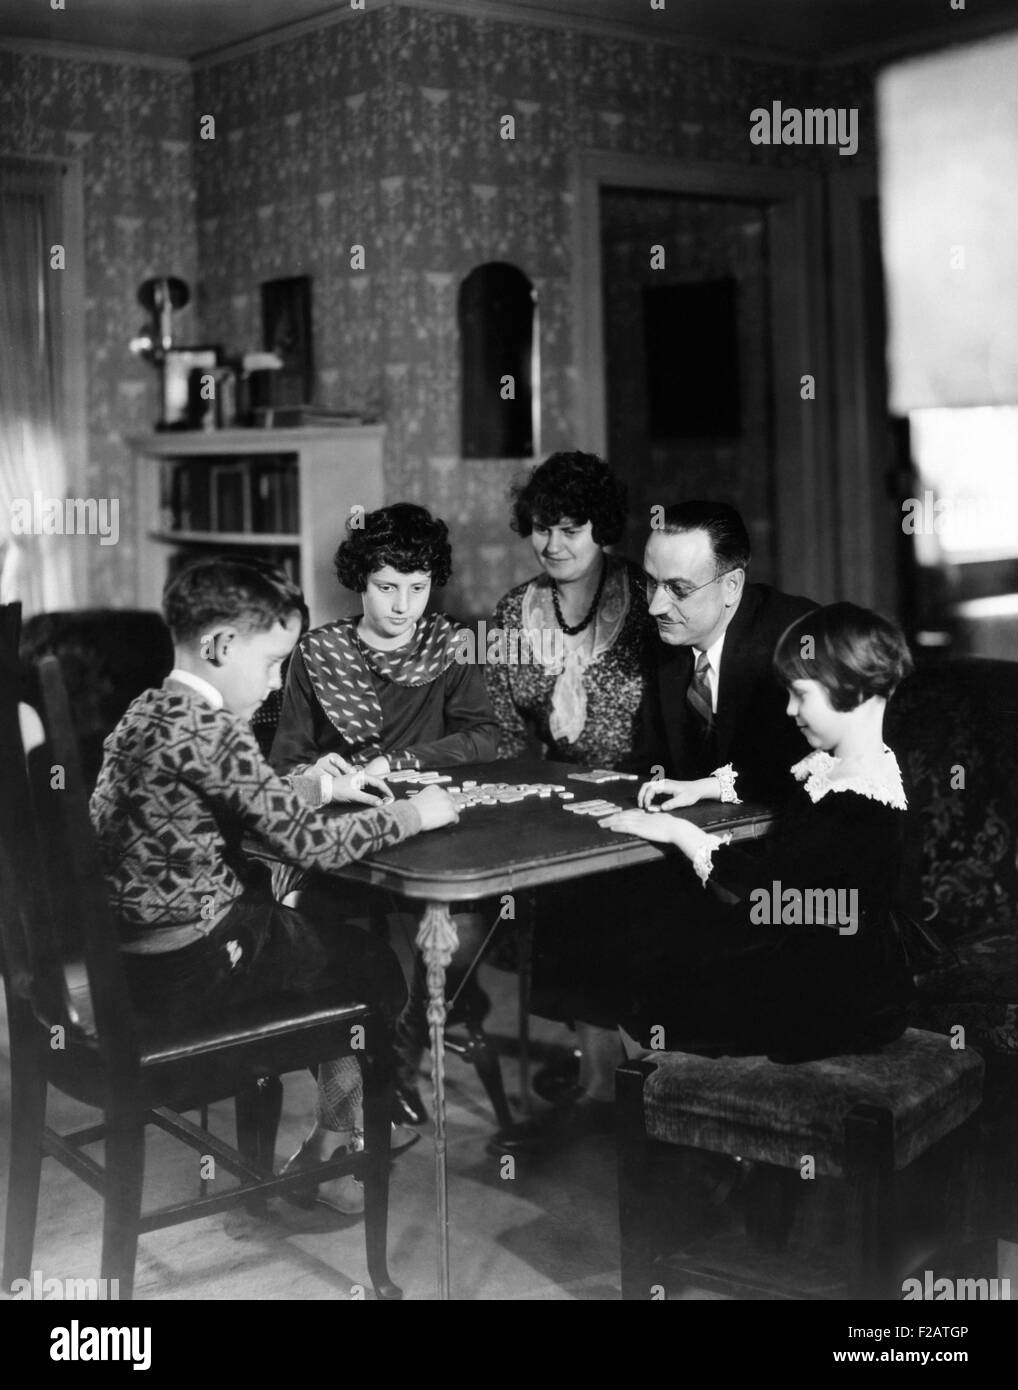 Dr. Karl A. Menninger, psychiatrist, playing a game with his family. Ca. 1930. L-R: Robert Gaines, Julia, Mrs. Menninger, - Stock Image